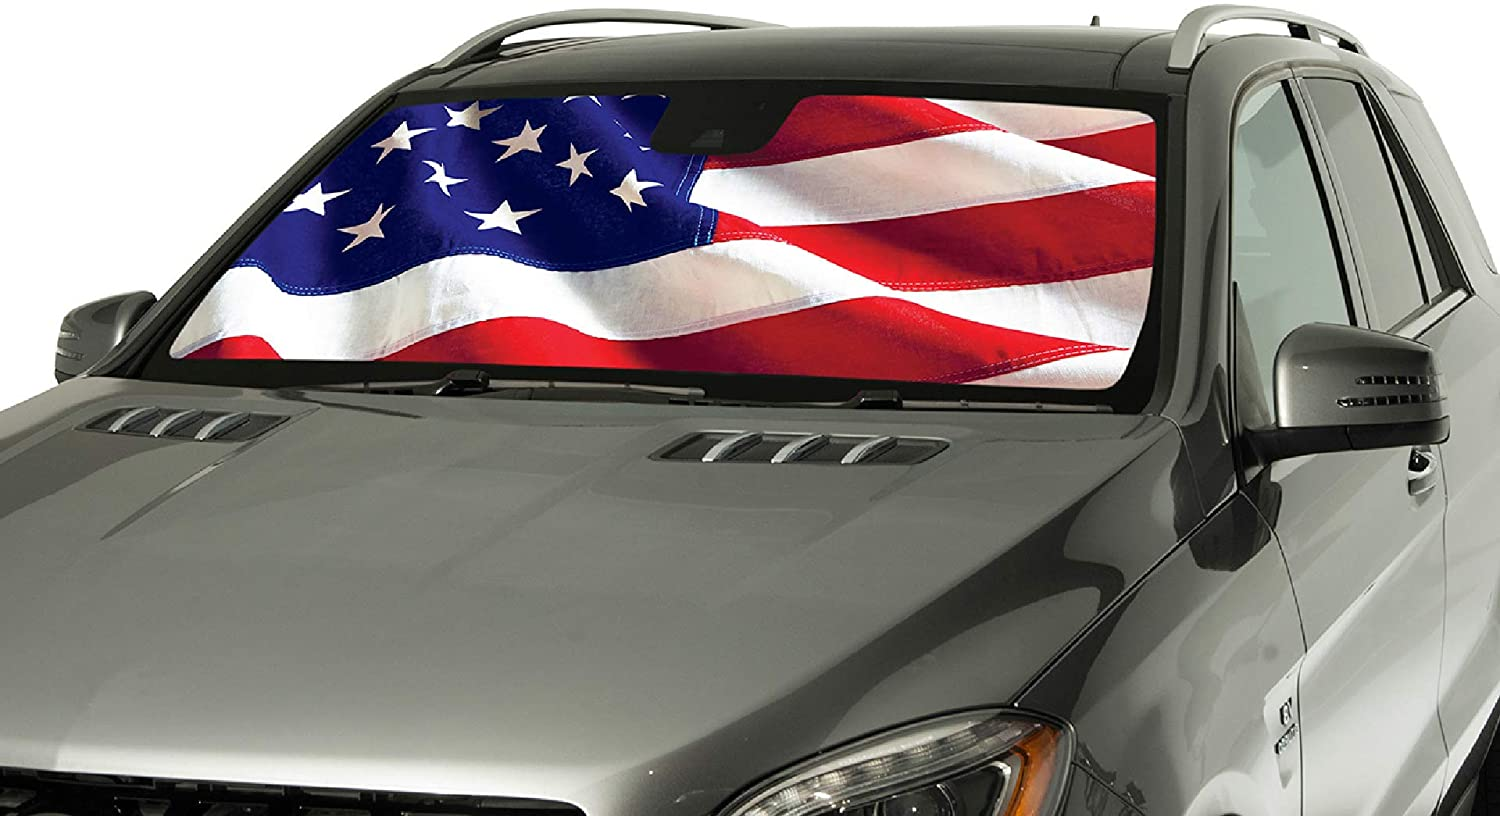 Intro-Tech CD-65A-US Silver Custom Fit American Flag Windshield Sunshade for Select Cadillac Escalade ESV Models, w/Sensor